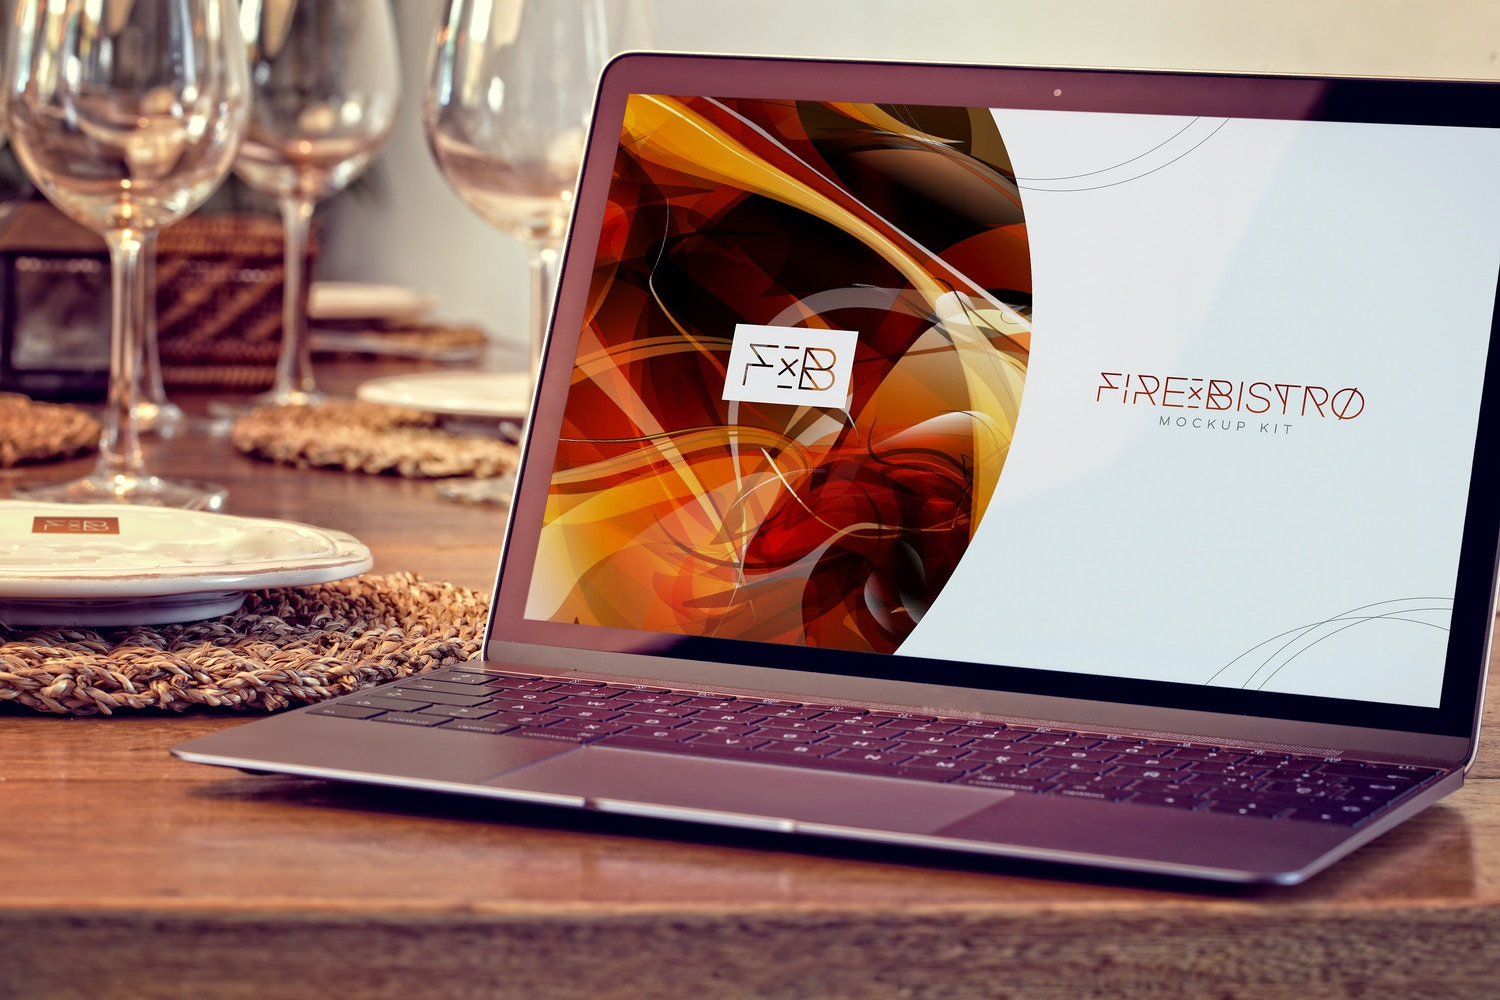 Macbook Mockup 01 (1) por 4to Pixel en Original Mockups